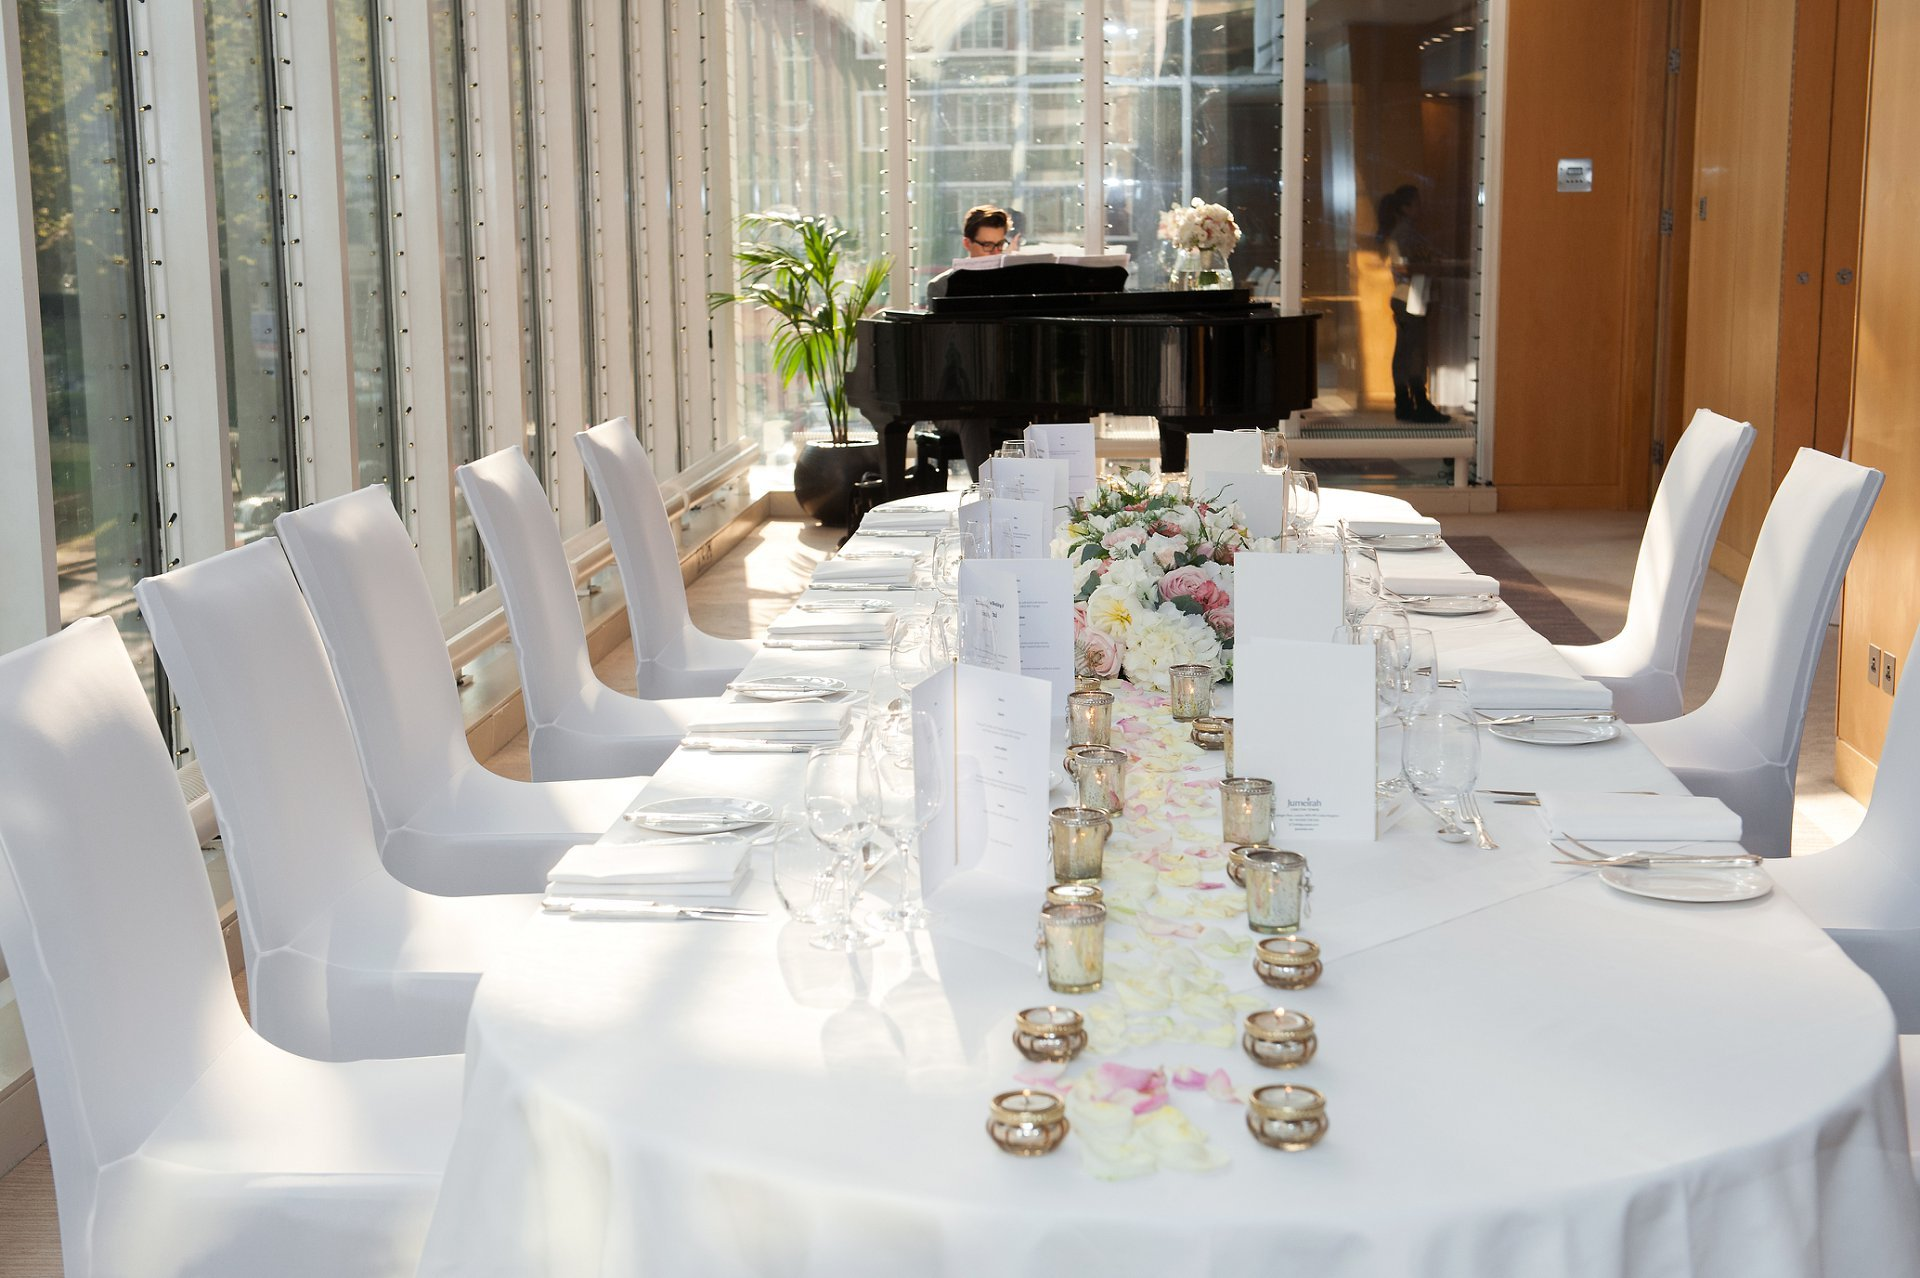 The Garden Room at Jumeirah Carlton Tower in Knightsbridge laid for an intimate wedding breakfast